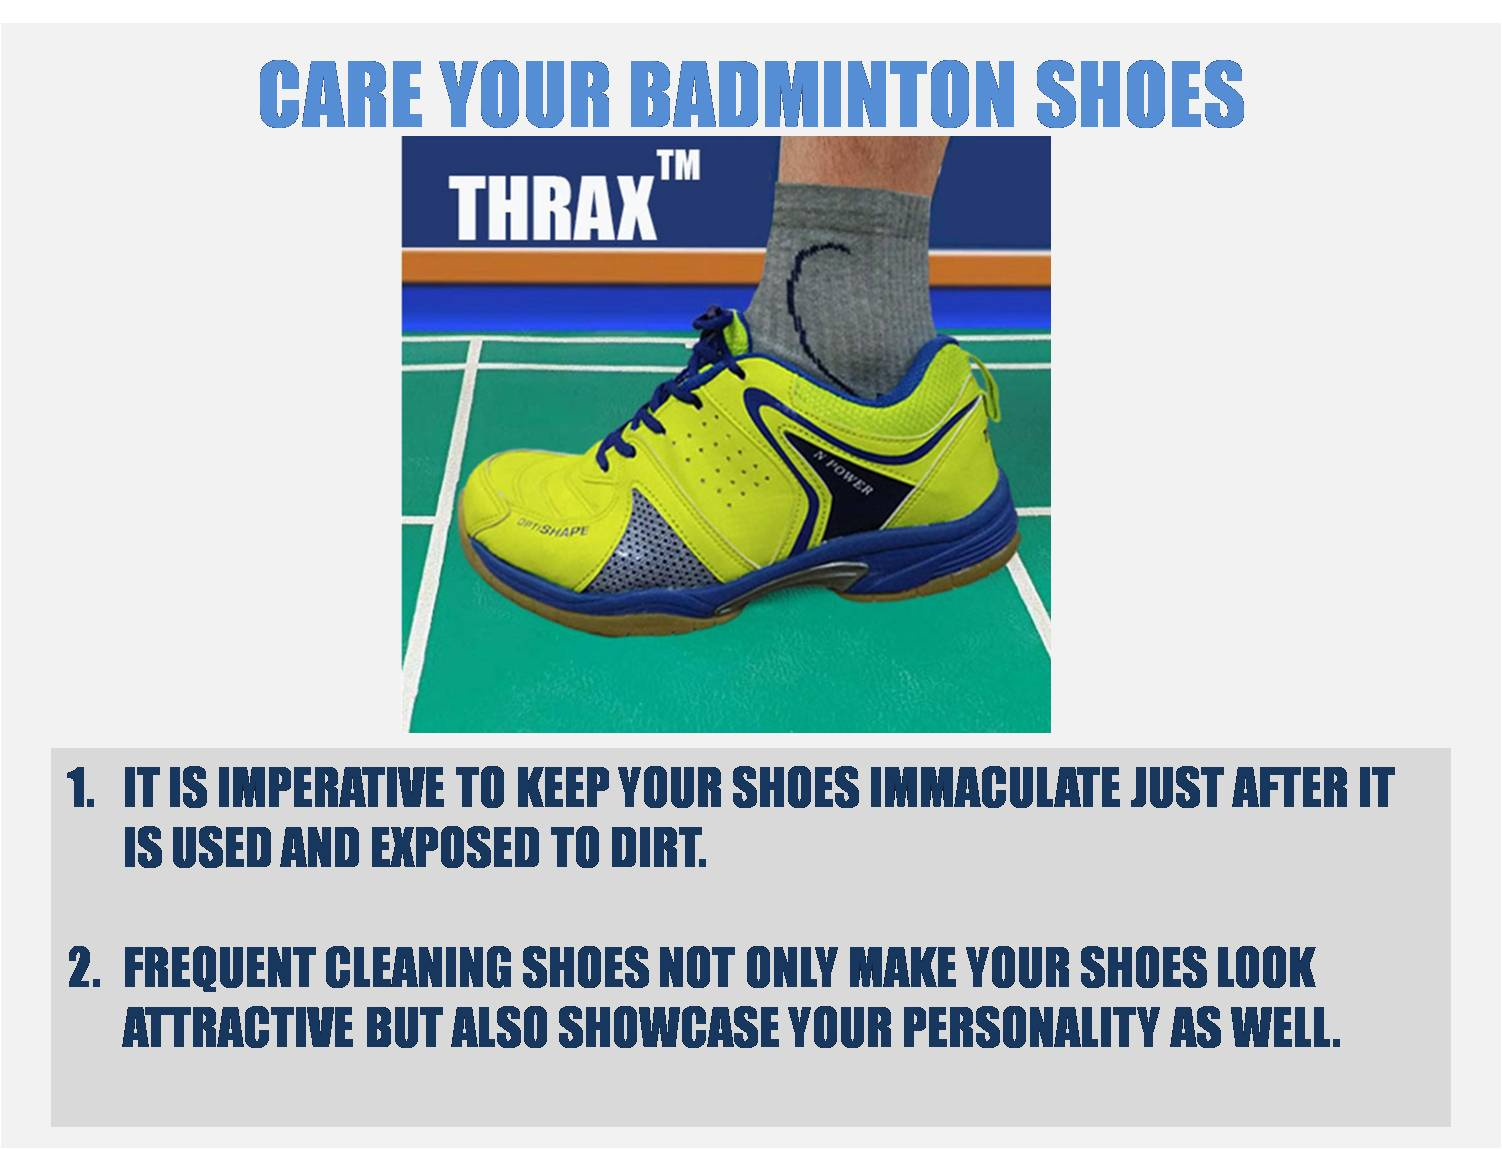 how_to_care_the_badminton_shoes_khelmart_Guide.jpg